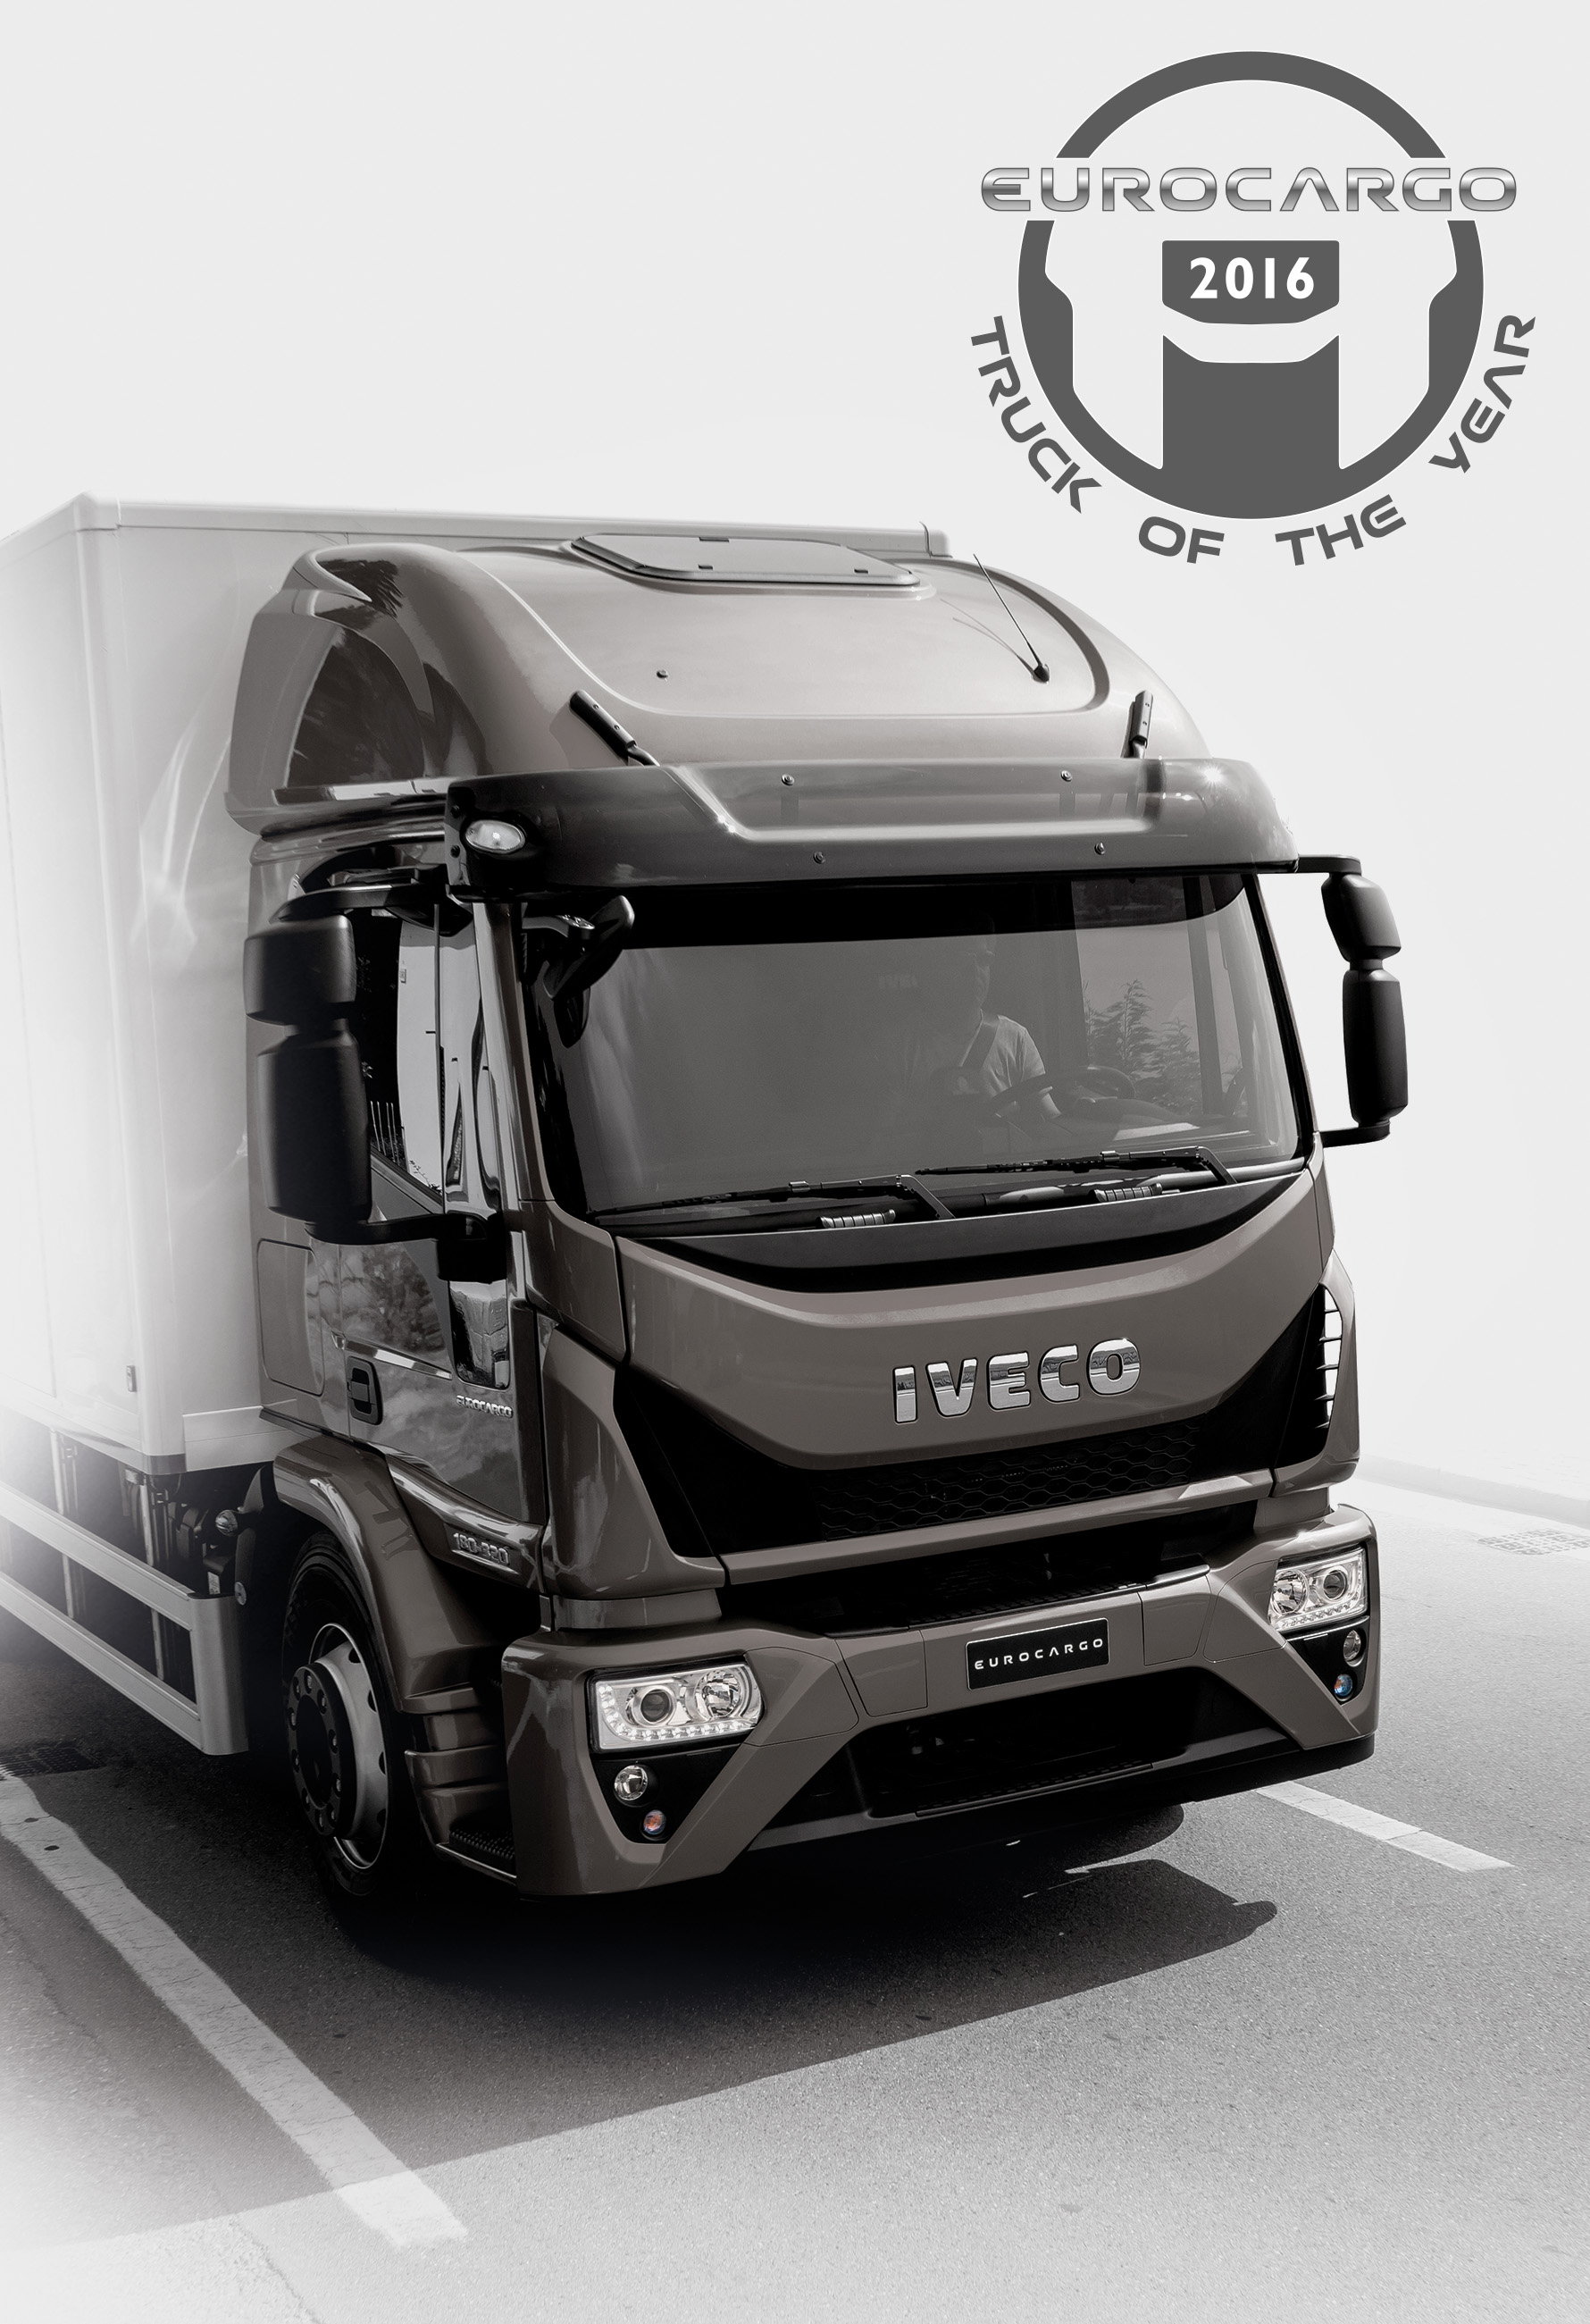 iveco eurocargo 2016 international truck of the year market engineering. Black Bedroom Furniture Sets. Home Design Ideas